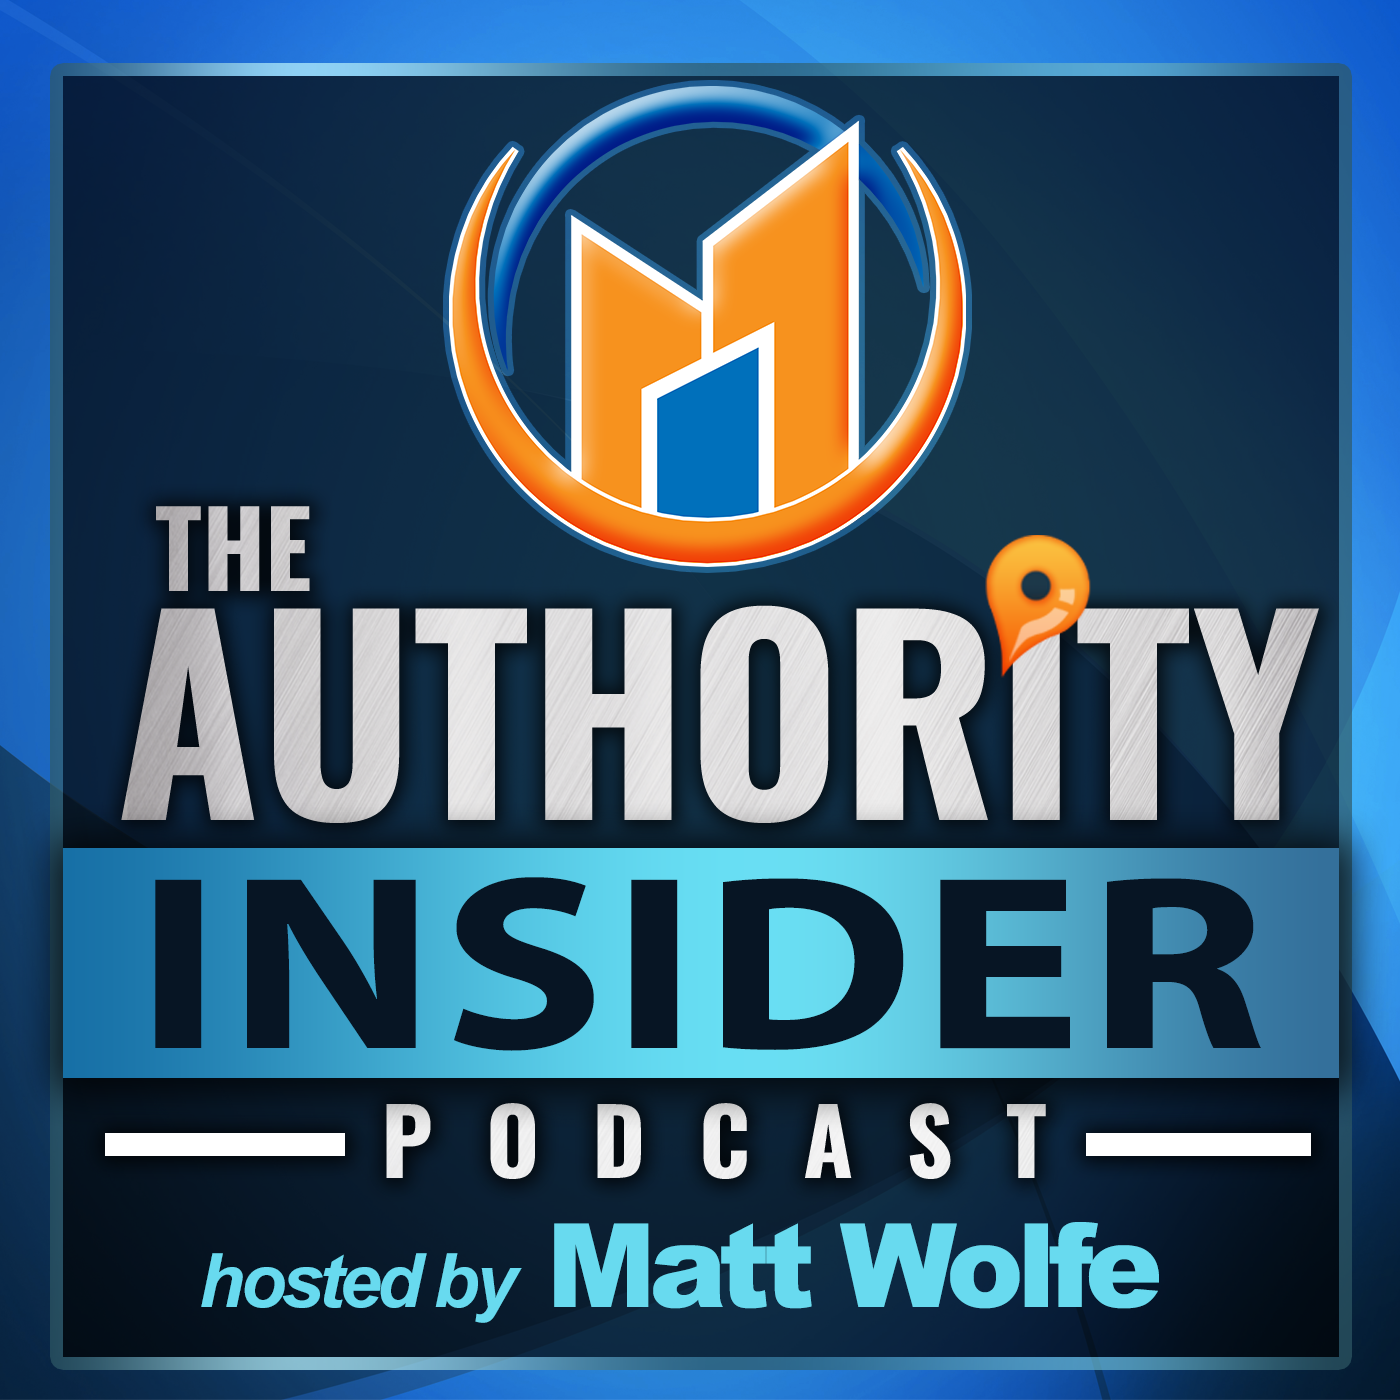 The Authority Insider Podcast show art